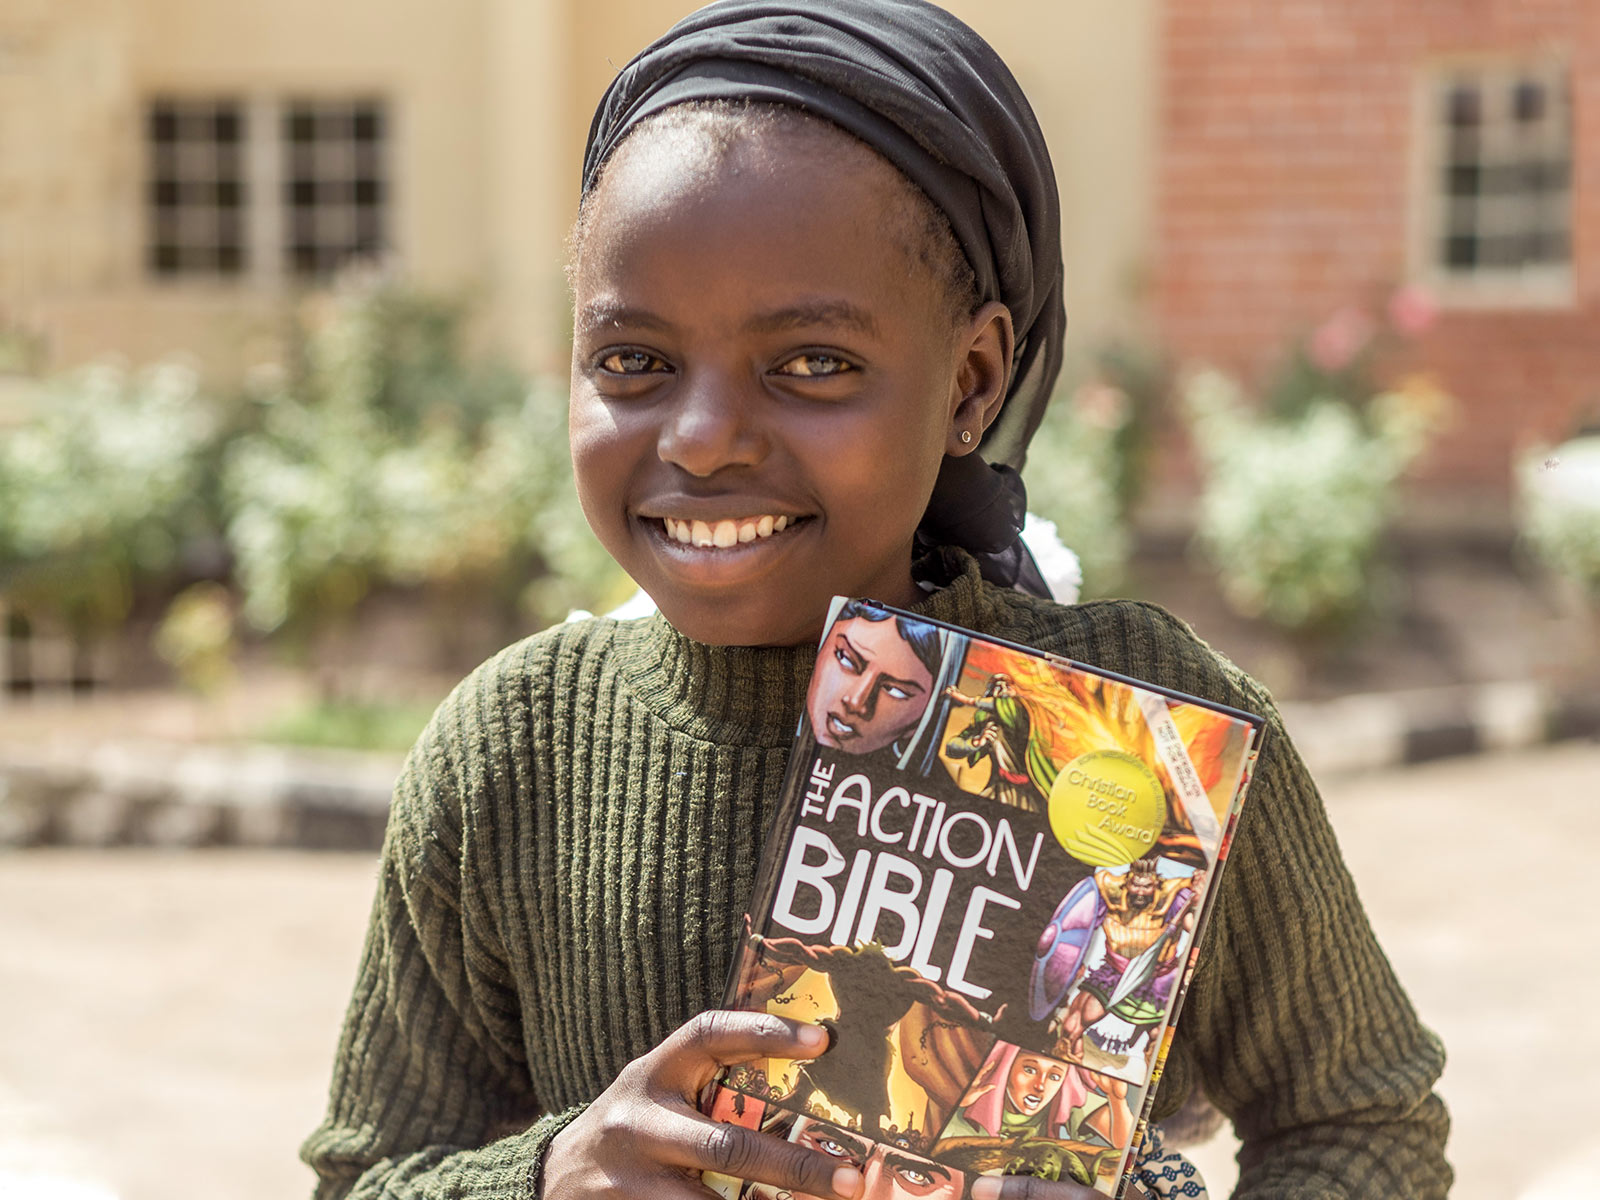 Smiling girl holding up action bible